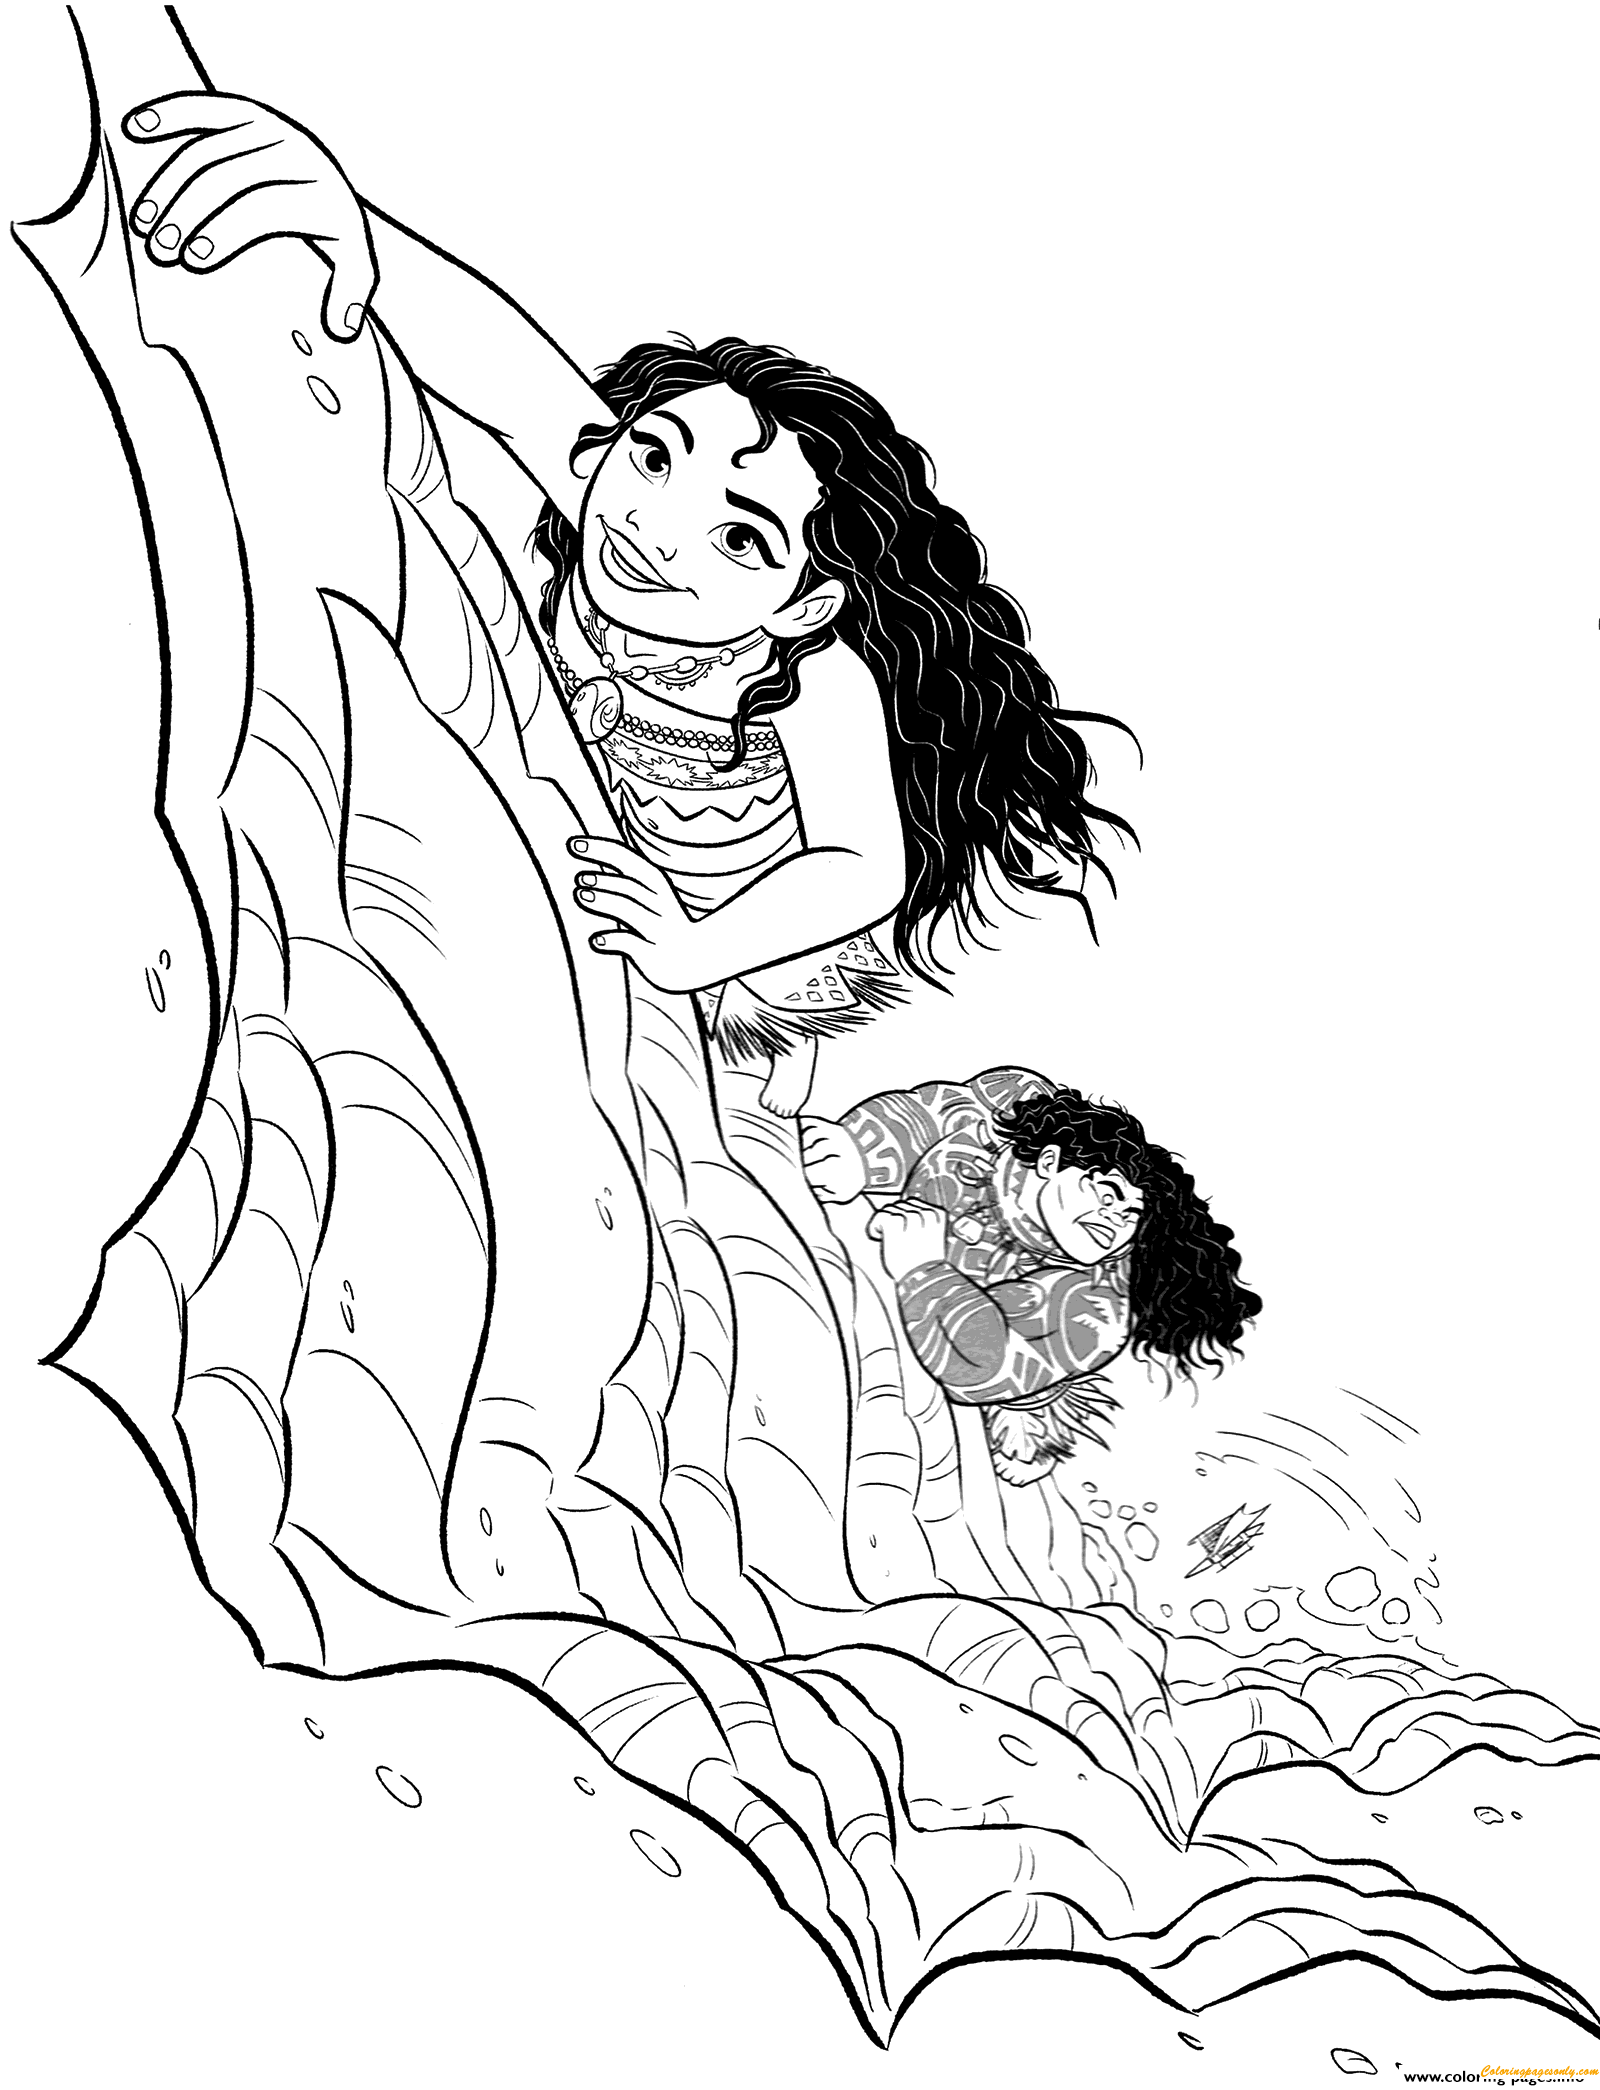 Moana And Maui Are Climbing Coloring Page Free Coloring